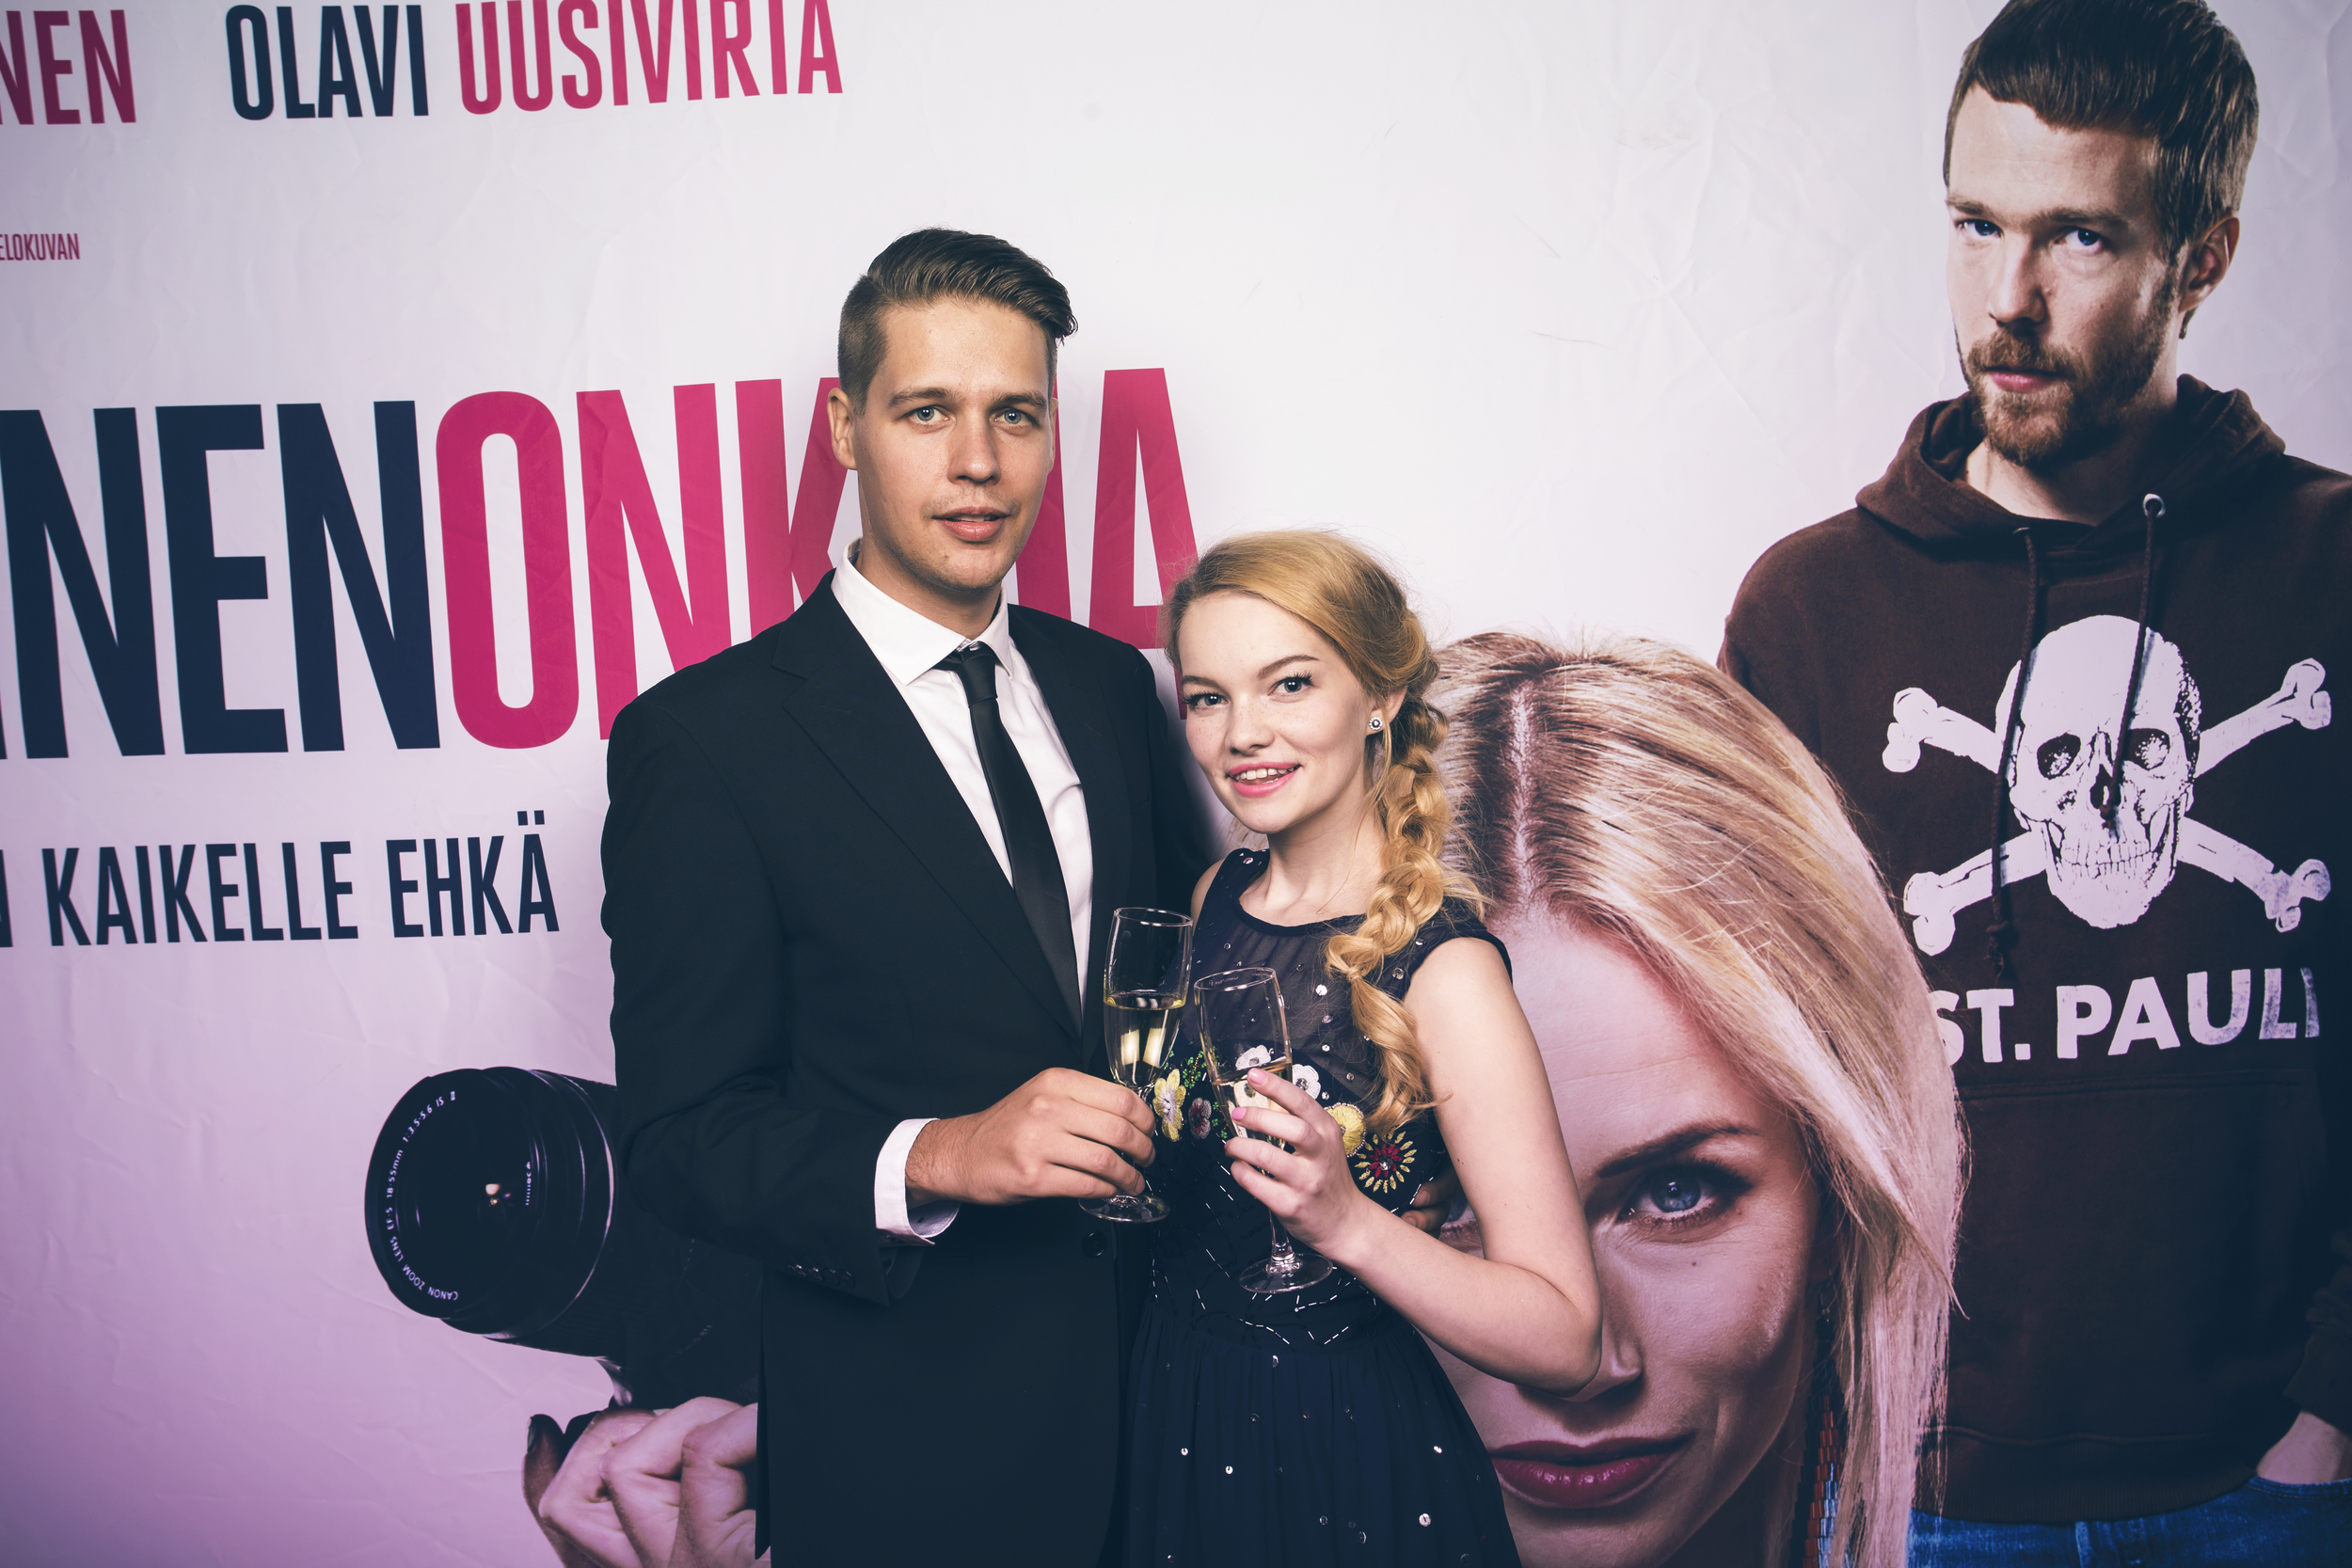 With my love at the red carpet © Kristian Tervo